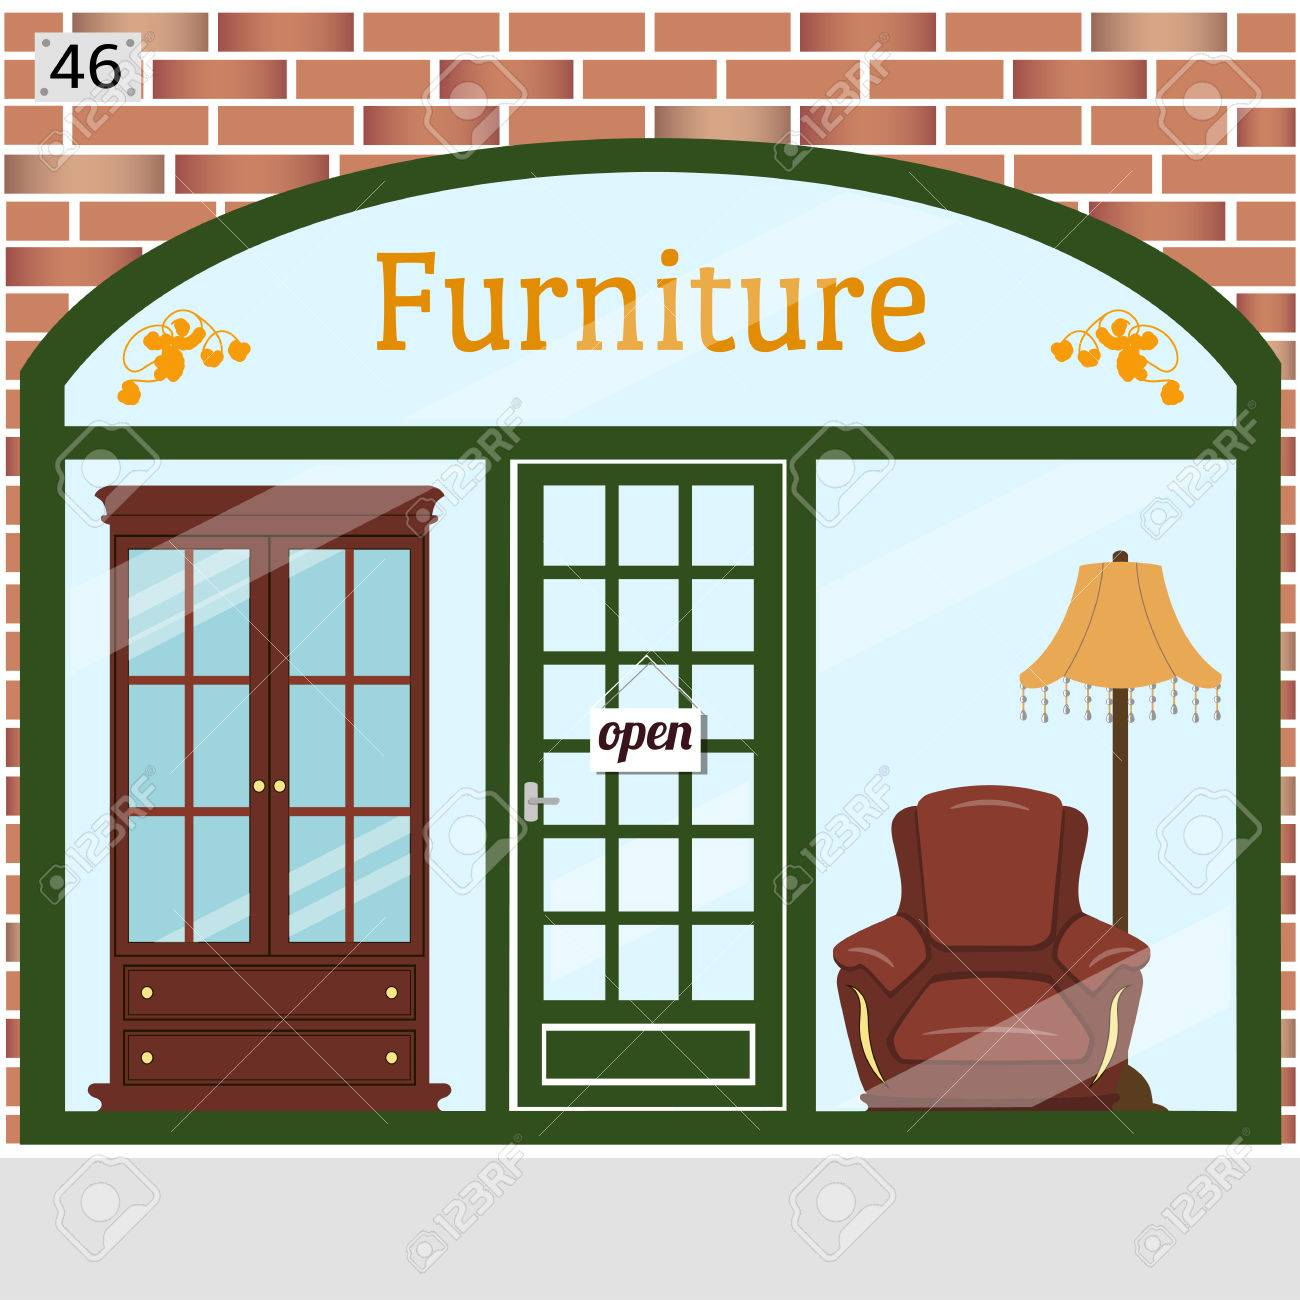 Cute Vector Illustration Of Furniture Shop With A Brick Wall, Large Window  Display Showcasing Various